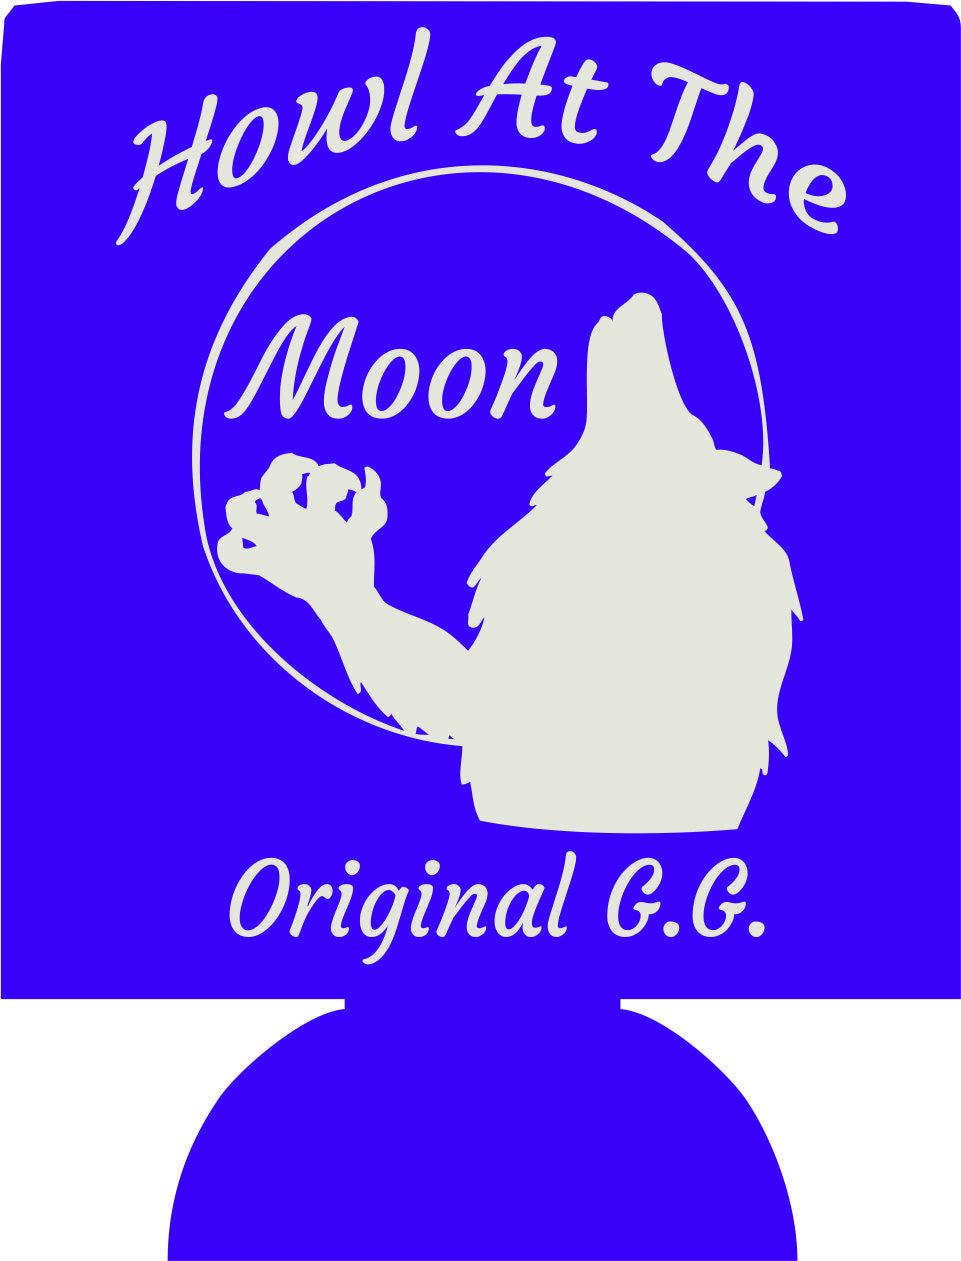 Howl at the Moon Halloween Koozies party favors can coolers 137398094